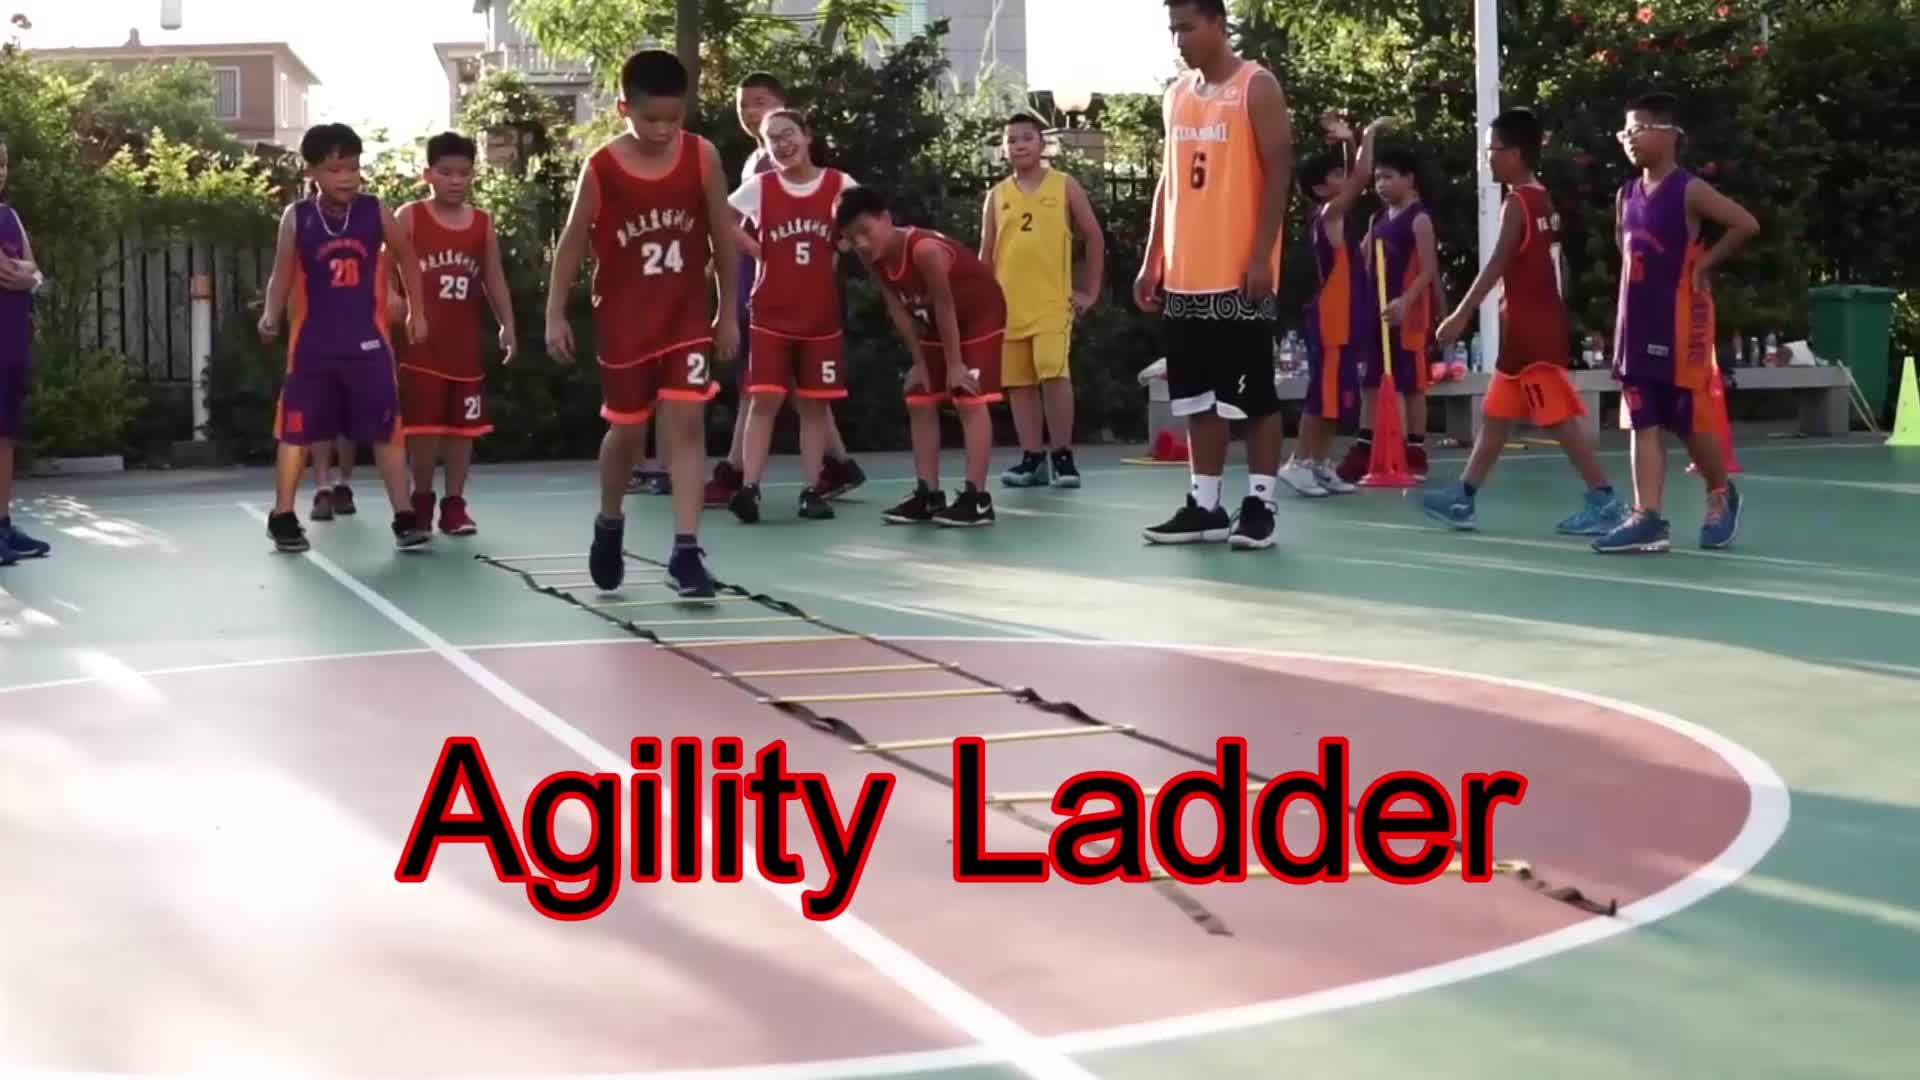 Speed Ladder, Workout Rings Agility Ladder, Football Training Ladder